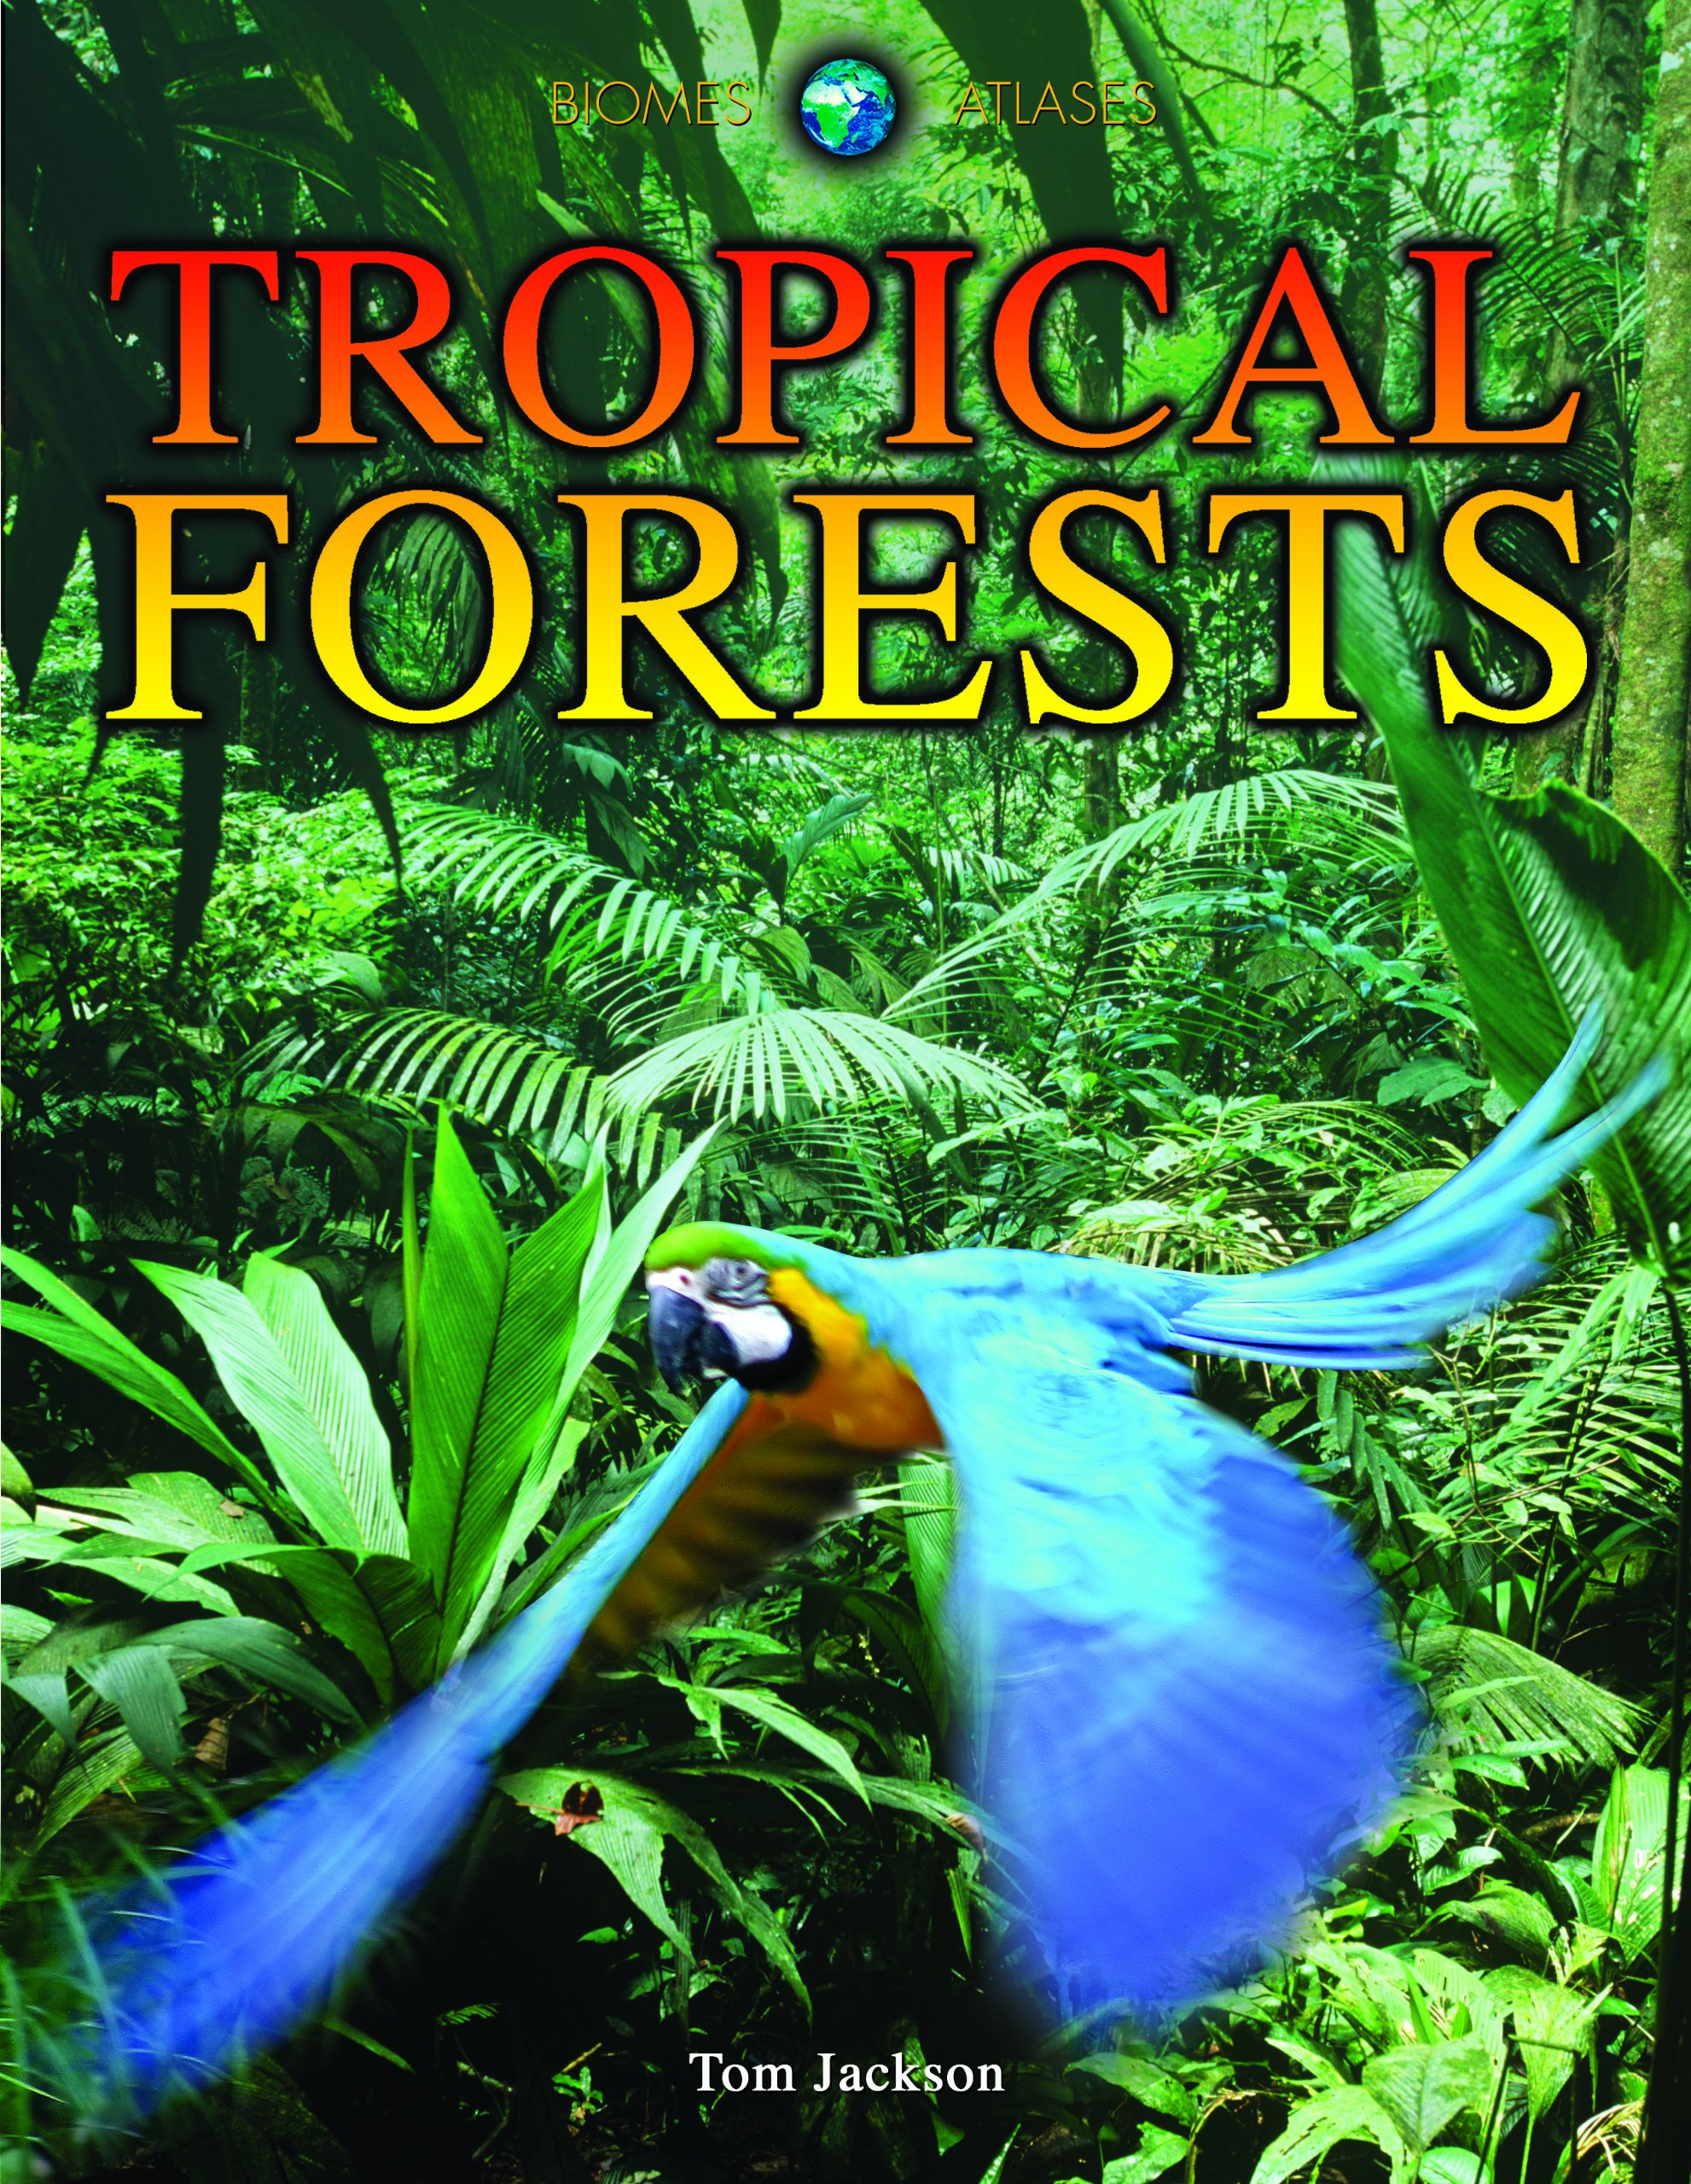 Download Tropical Forests (Biomes Atlases) ePub fb2 ebook